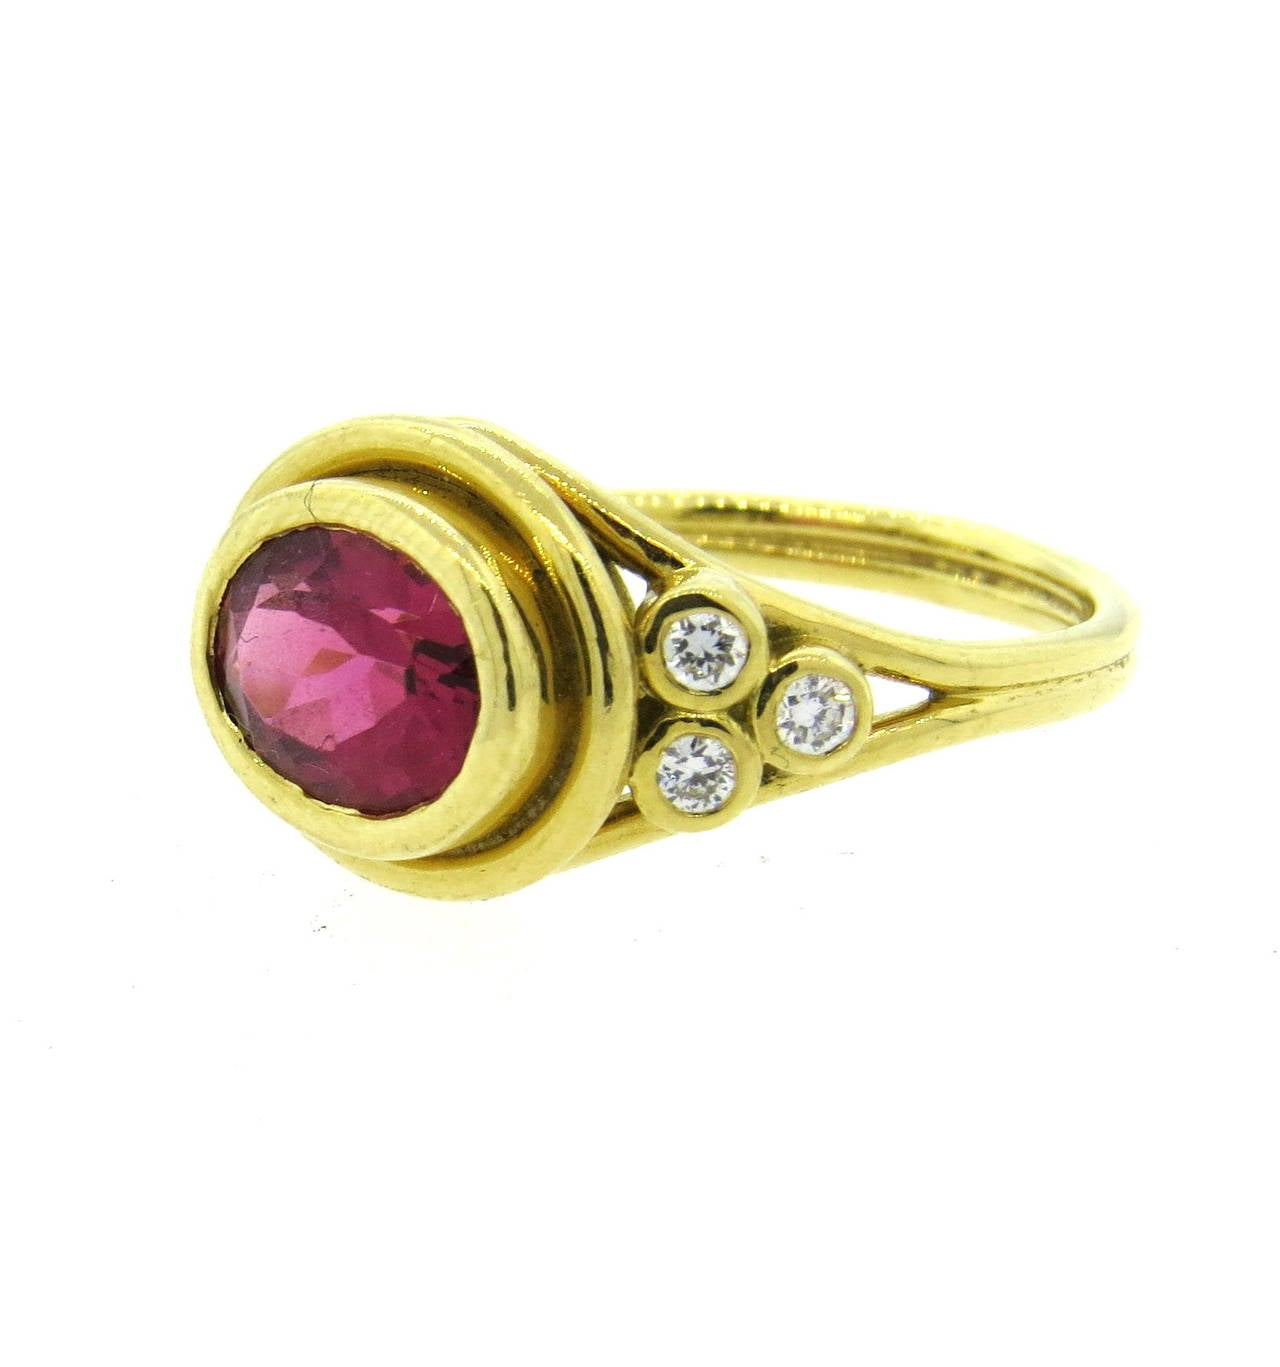 temple st clair pink tourmaline gold ring at 1stdibs